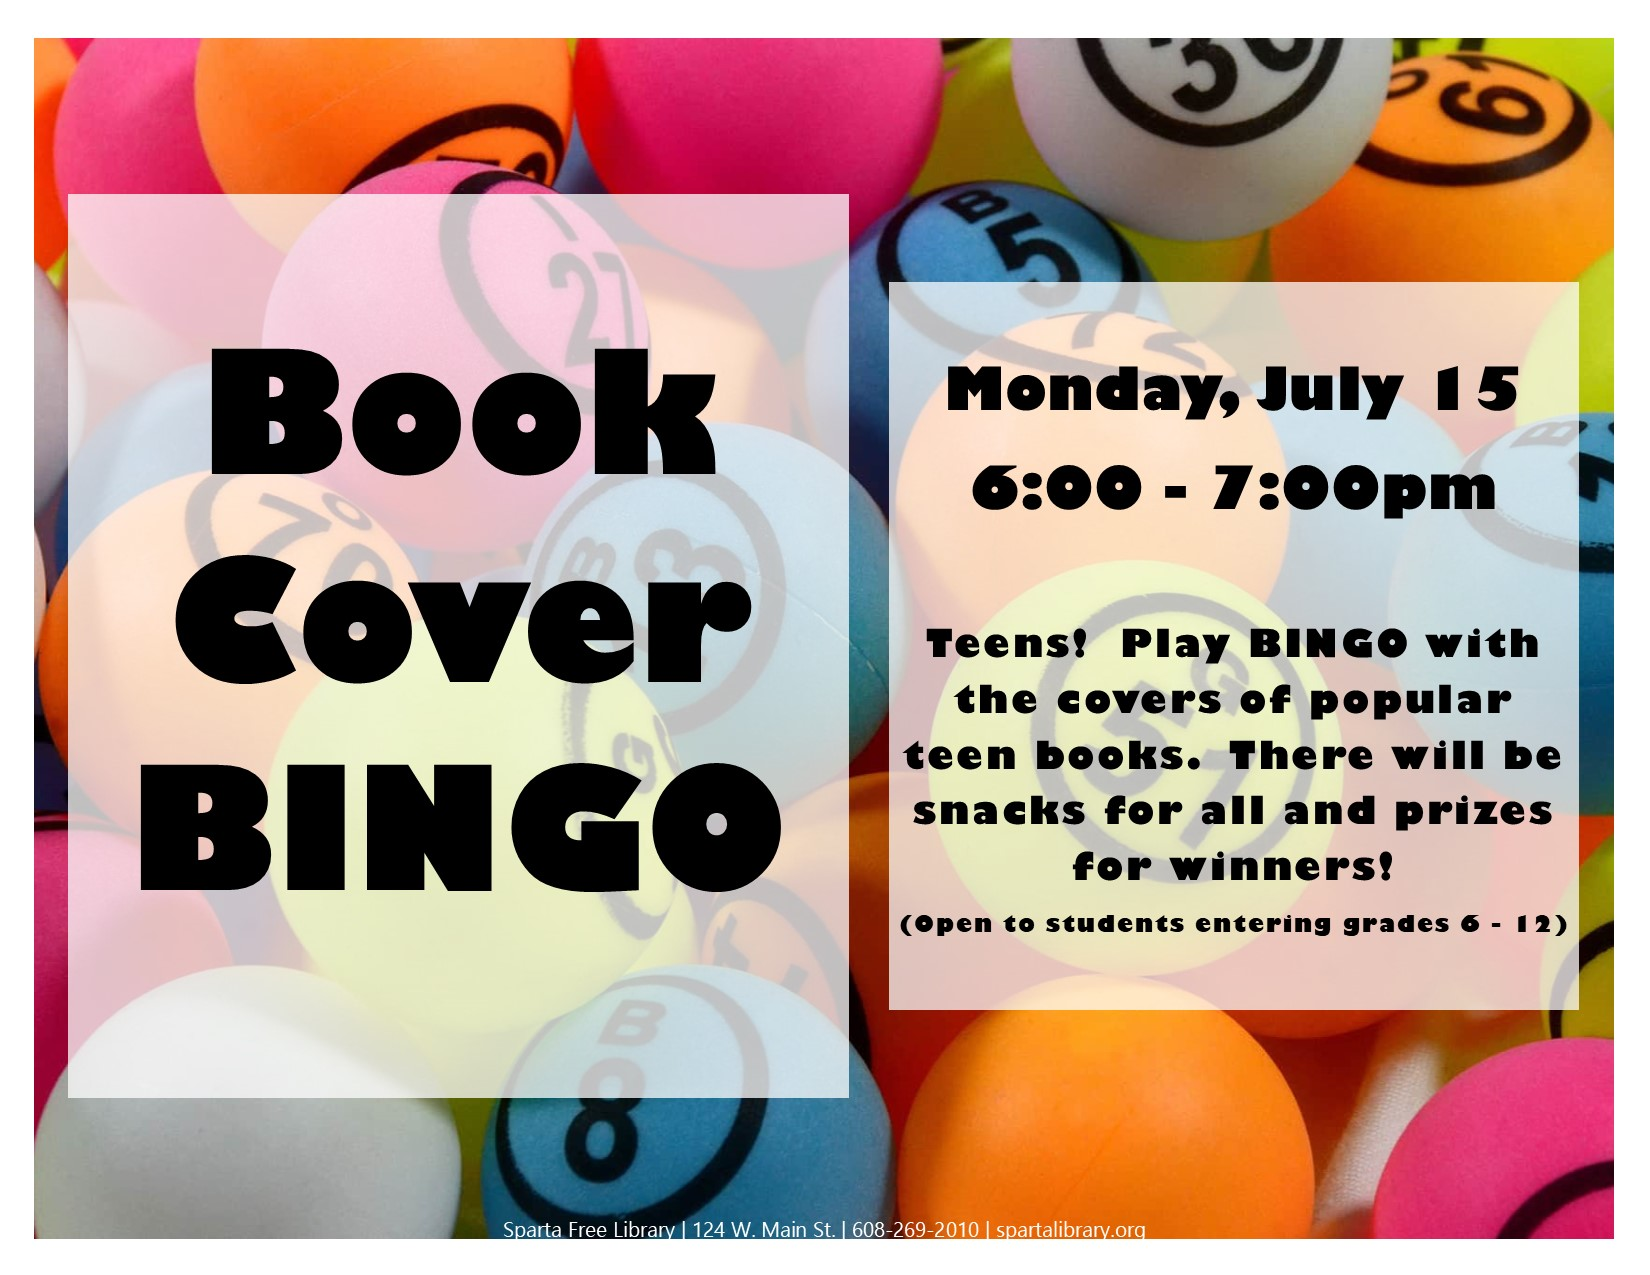 Book Cover Bingo @ Sparta Free Library